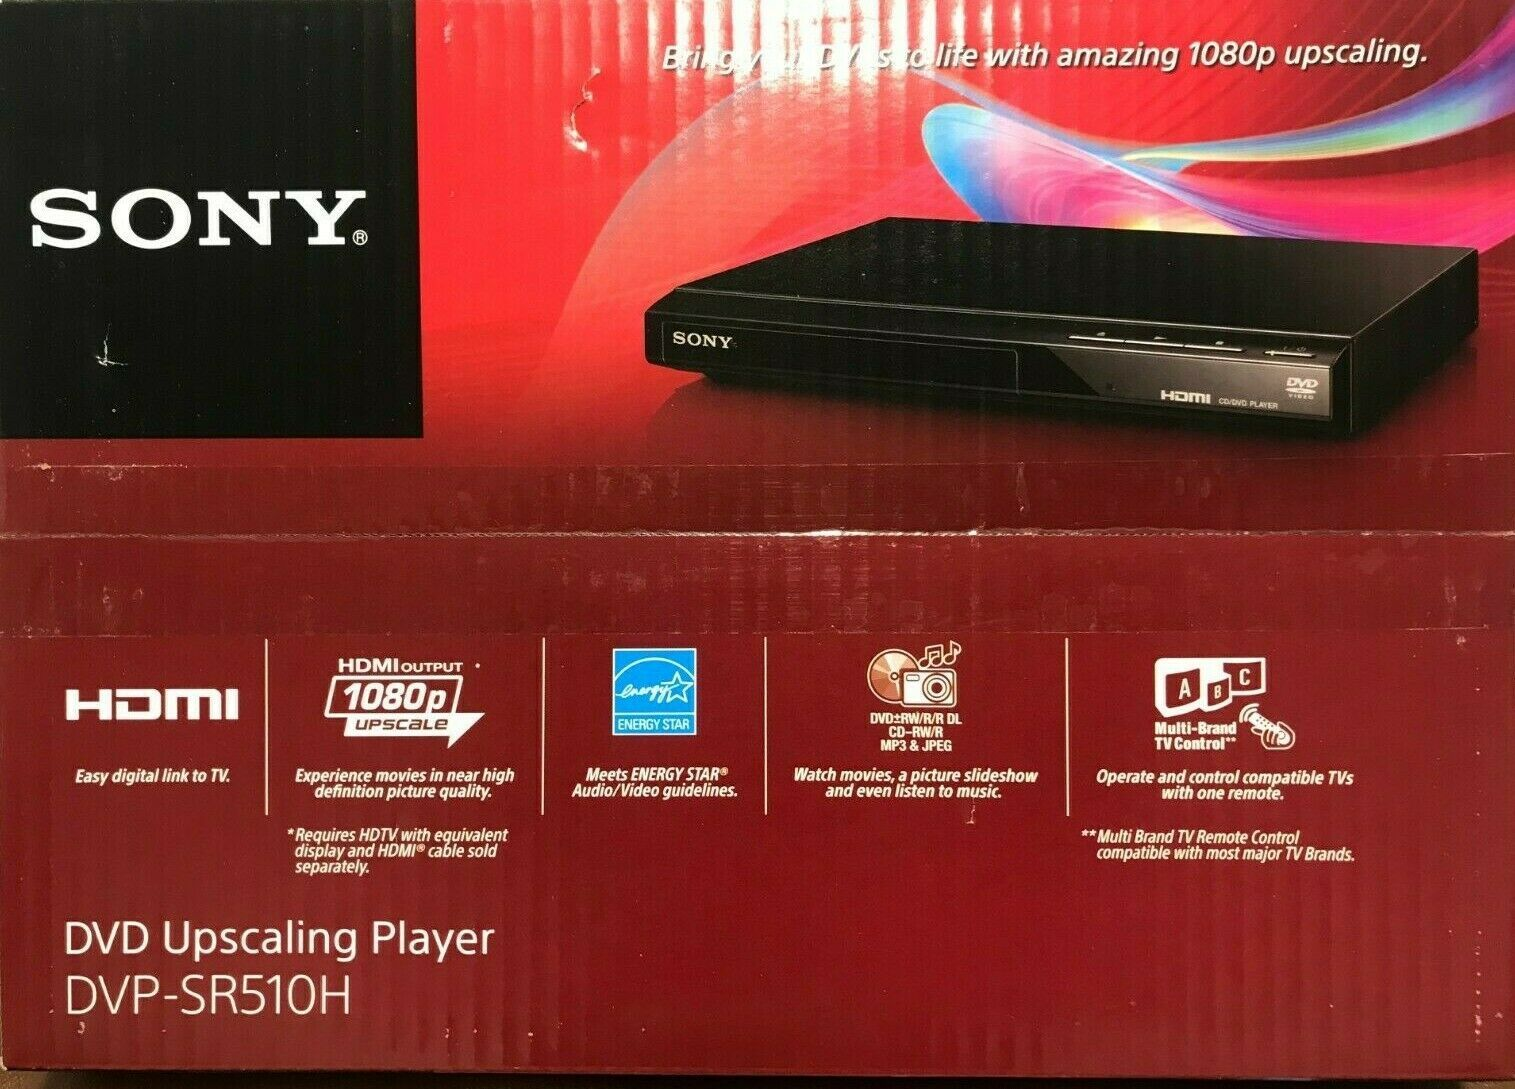 Primary image for Sony - DVPSR510H - DVD Player with HD Upconversion - Black